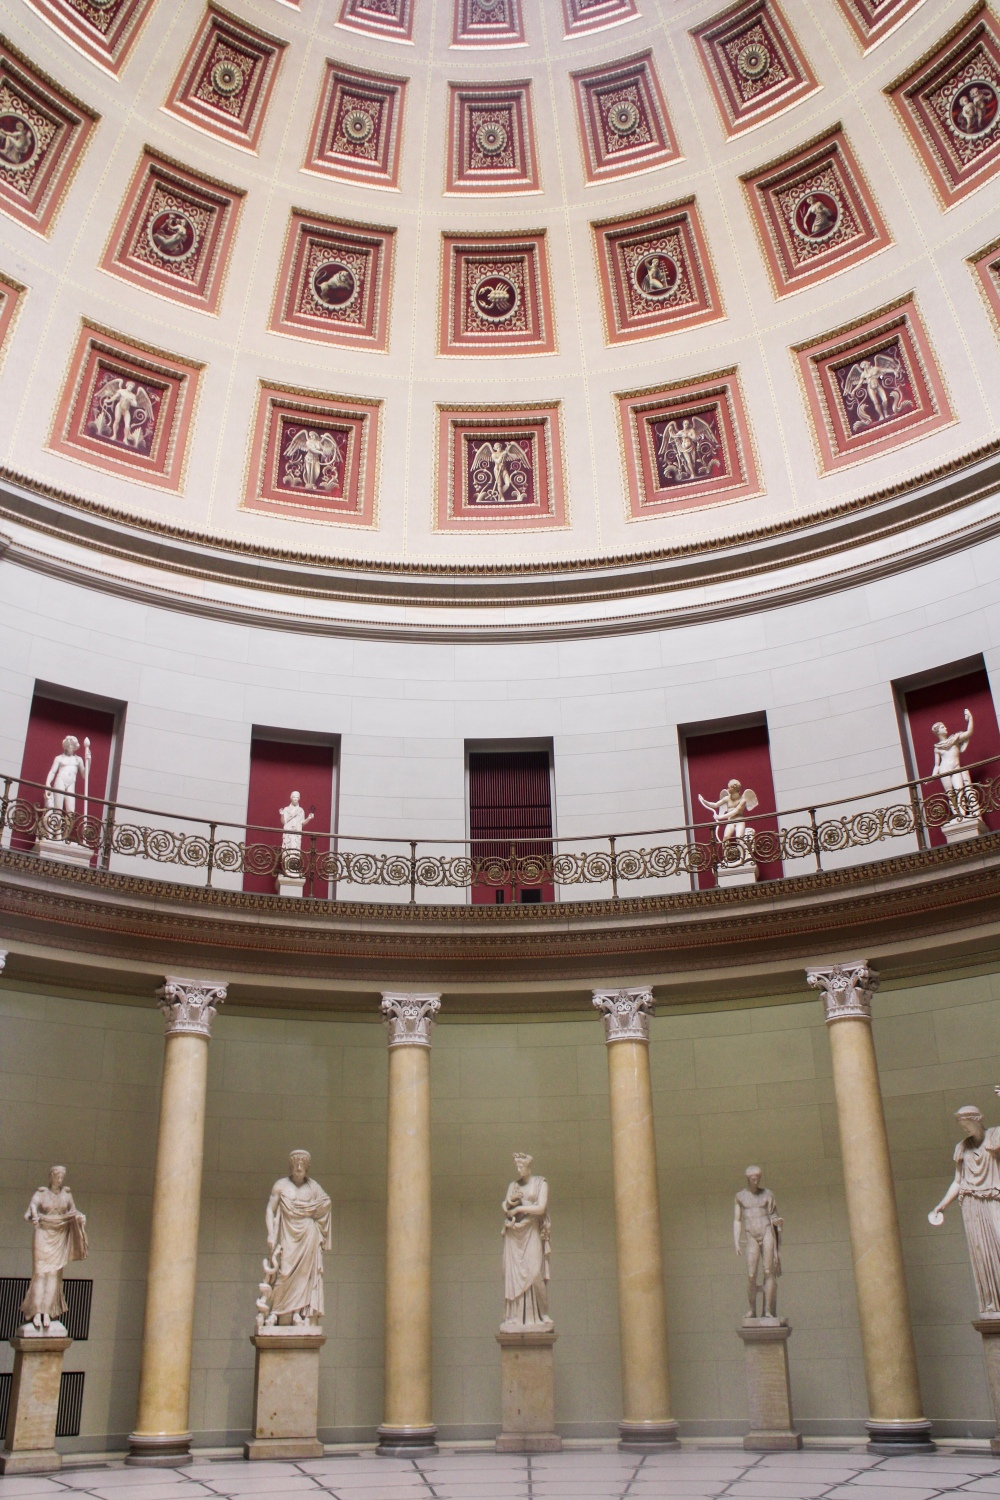 A symmetrical rotunda with statues